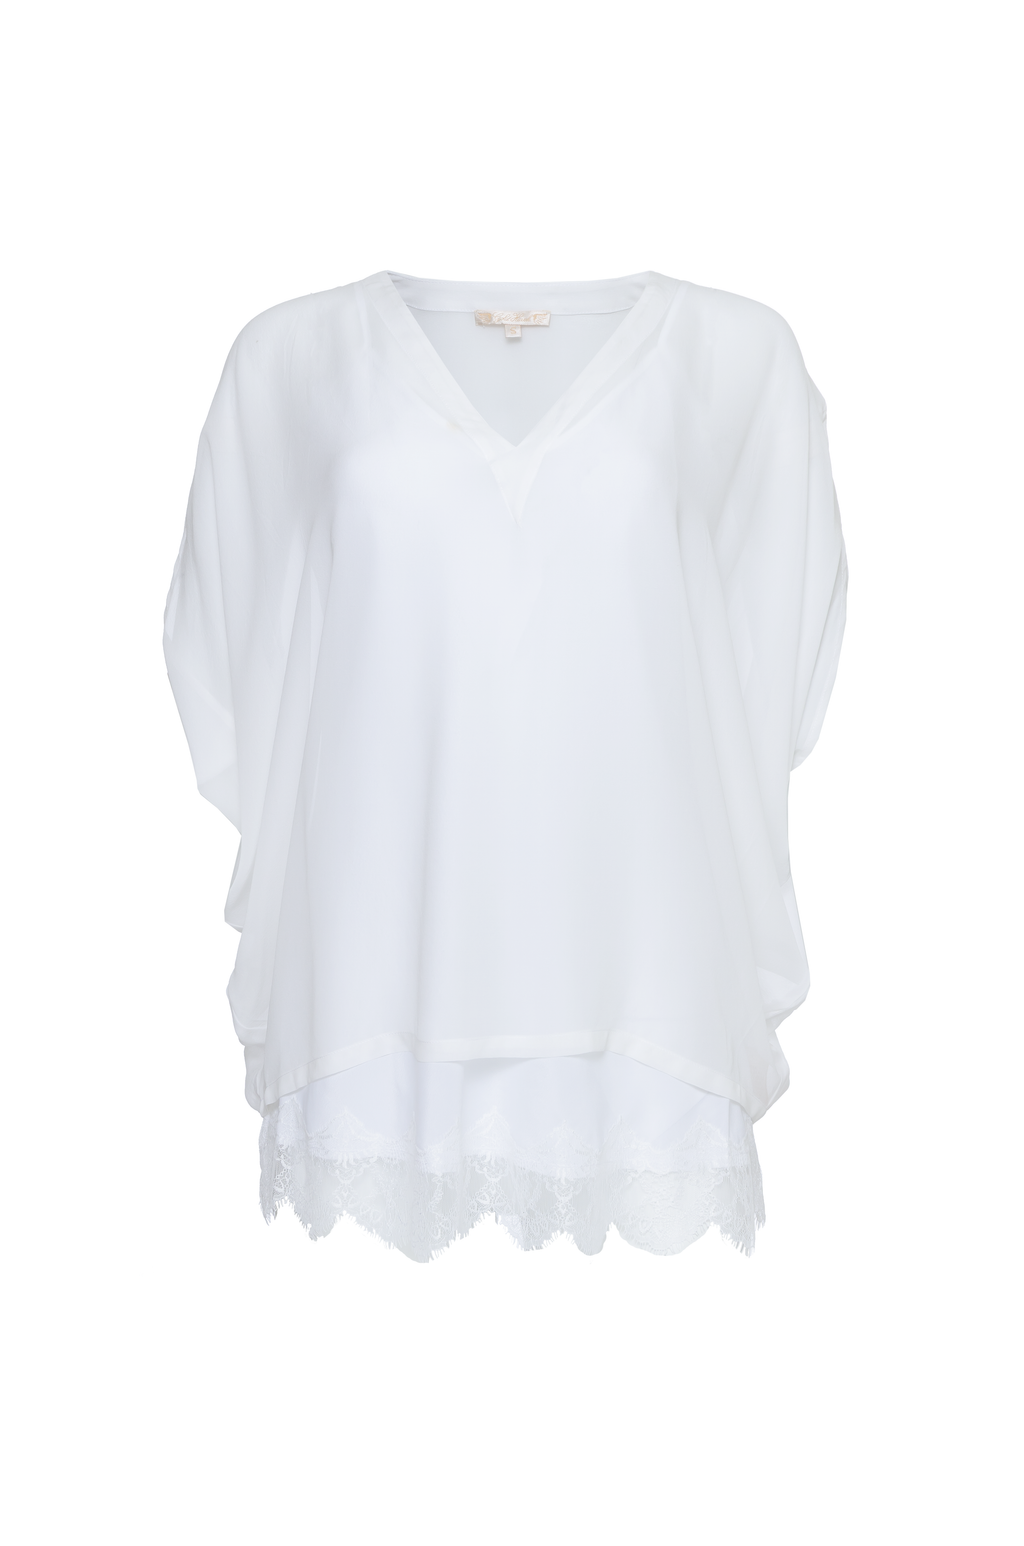 The Silk Lace Georgette Wedge Top in white.